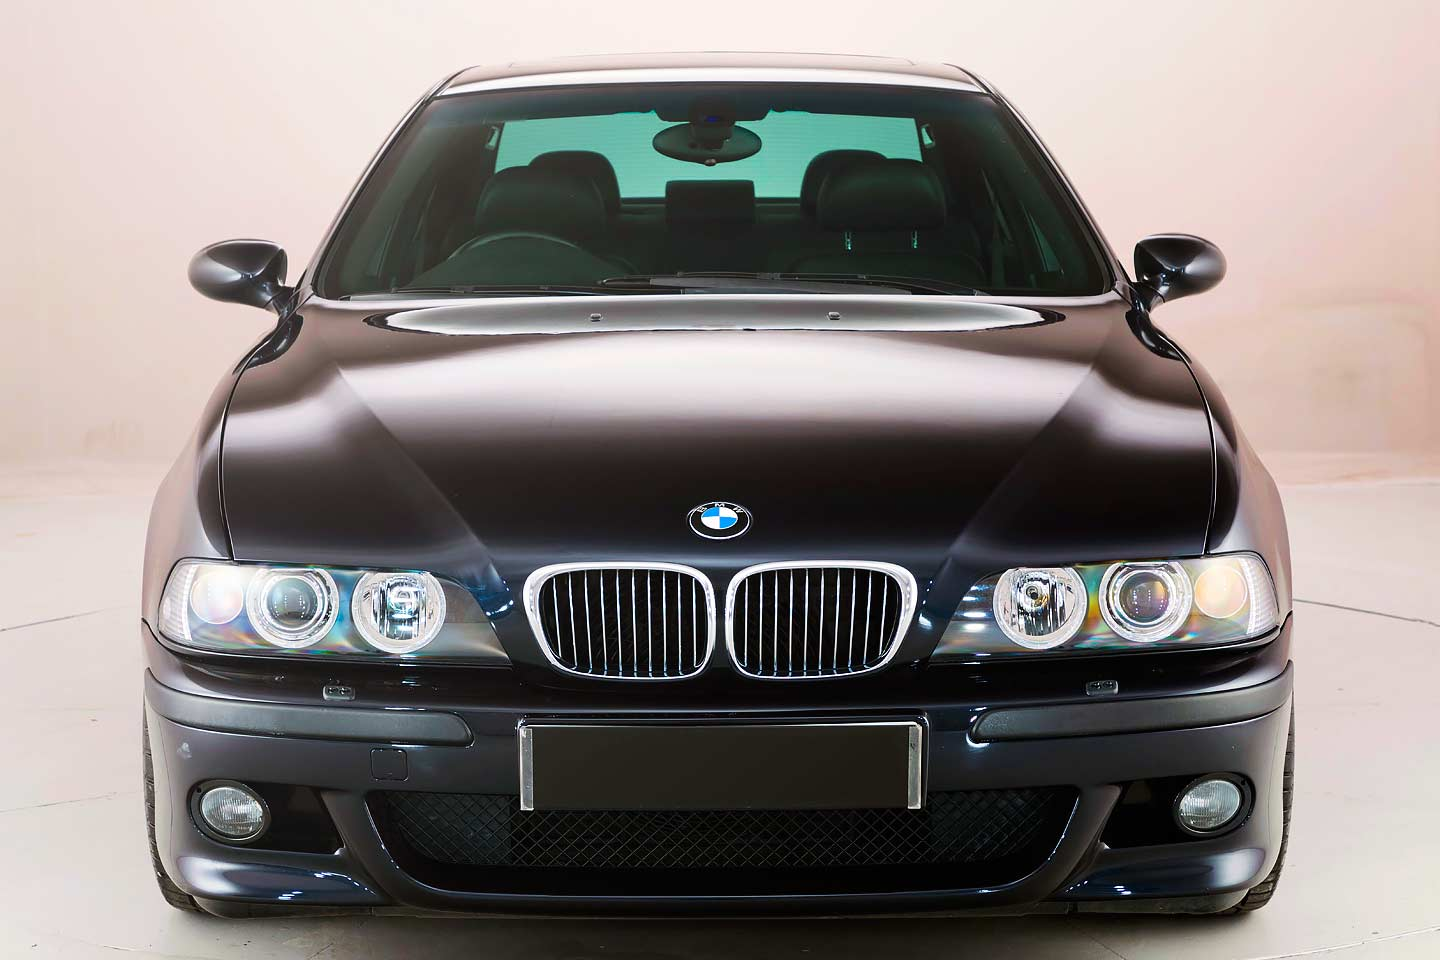 BMW E39 M5 >> Bmw M5 E39 Market Watch Drive My Blogs Drive